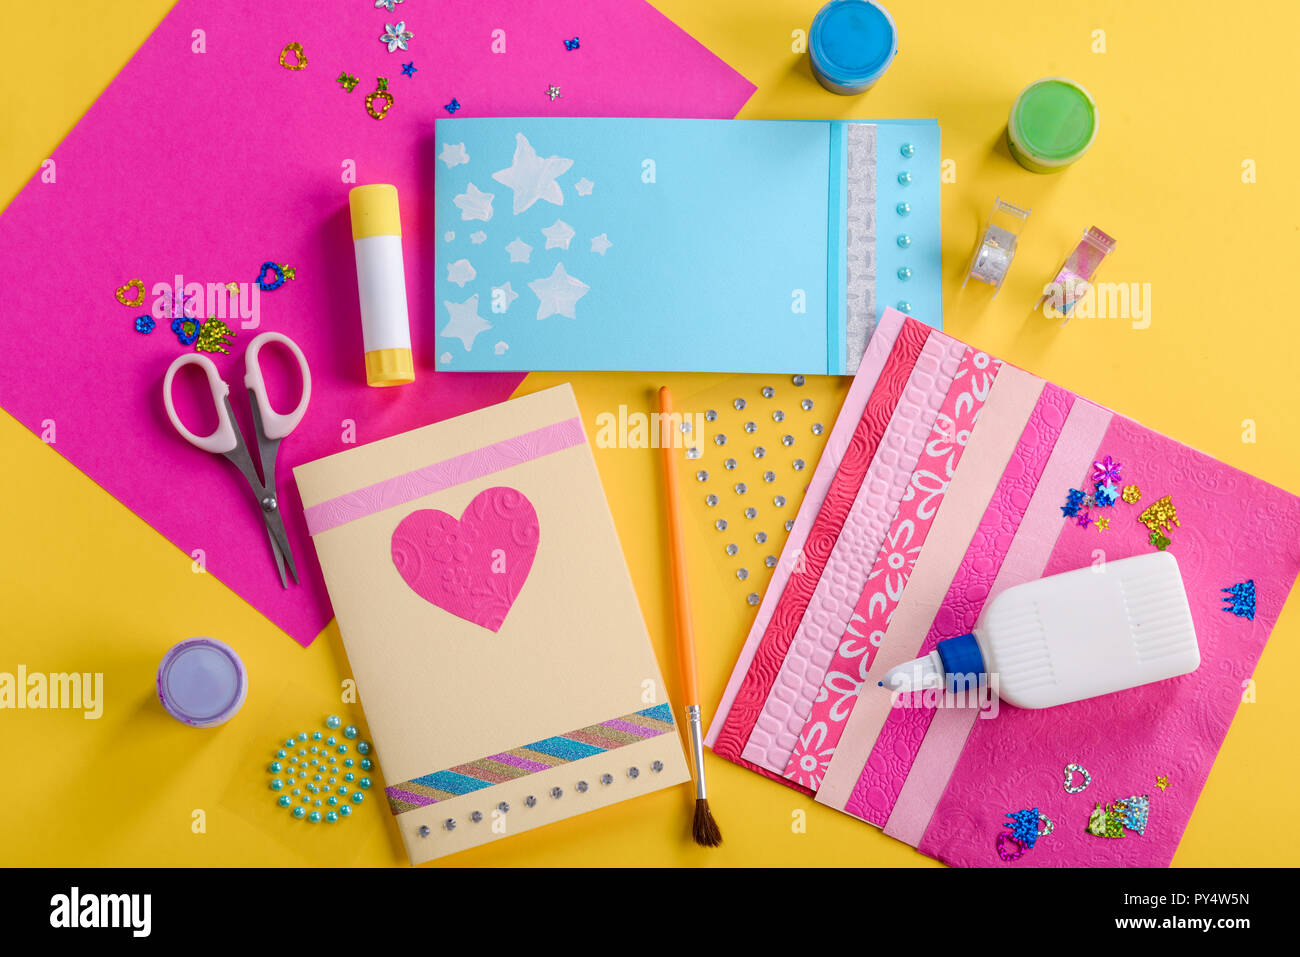 Wondrous Doing Handmade Greeting Cards Stock Photo 223227697 Alamy Funny Birthday Cards Online Alyptdamsfinfo